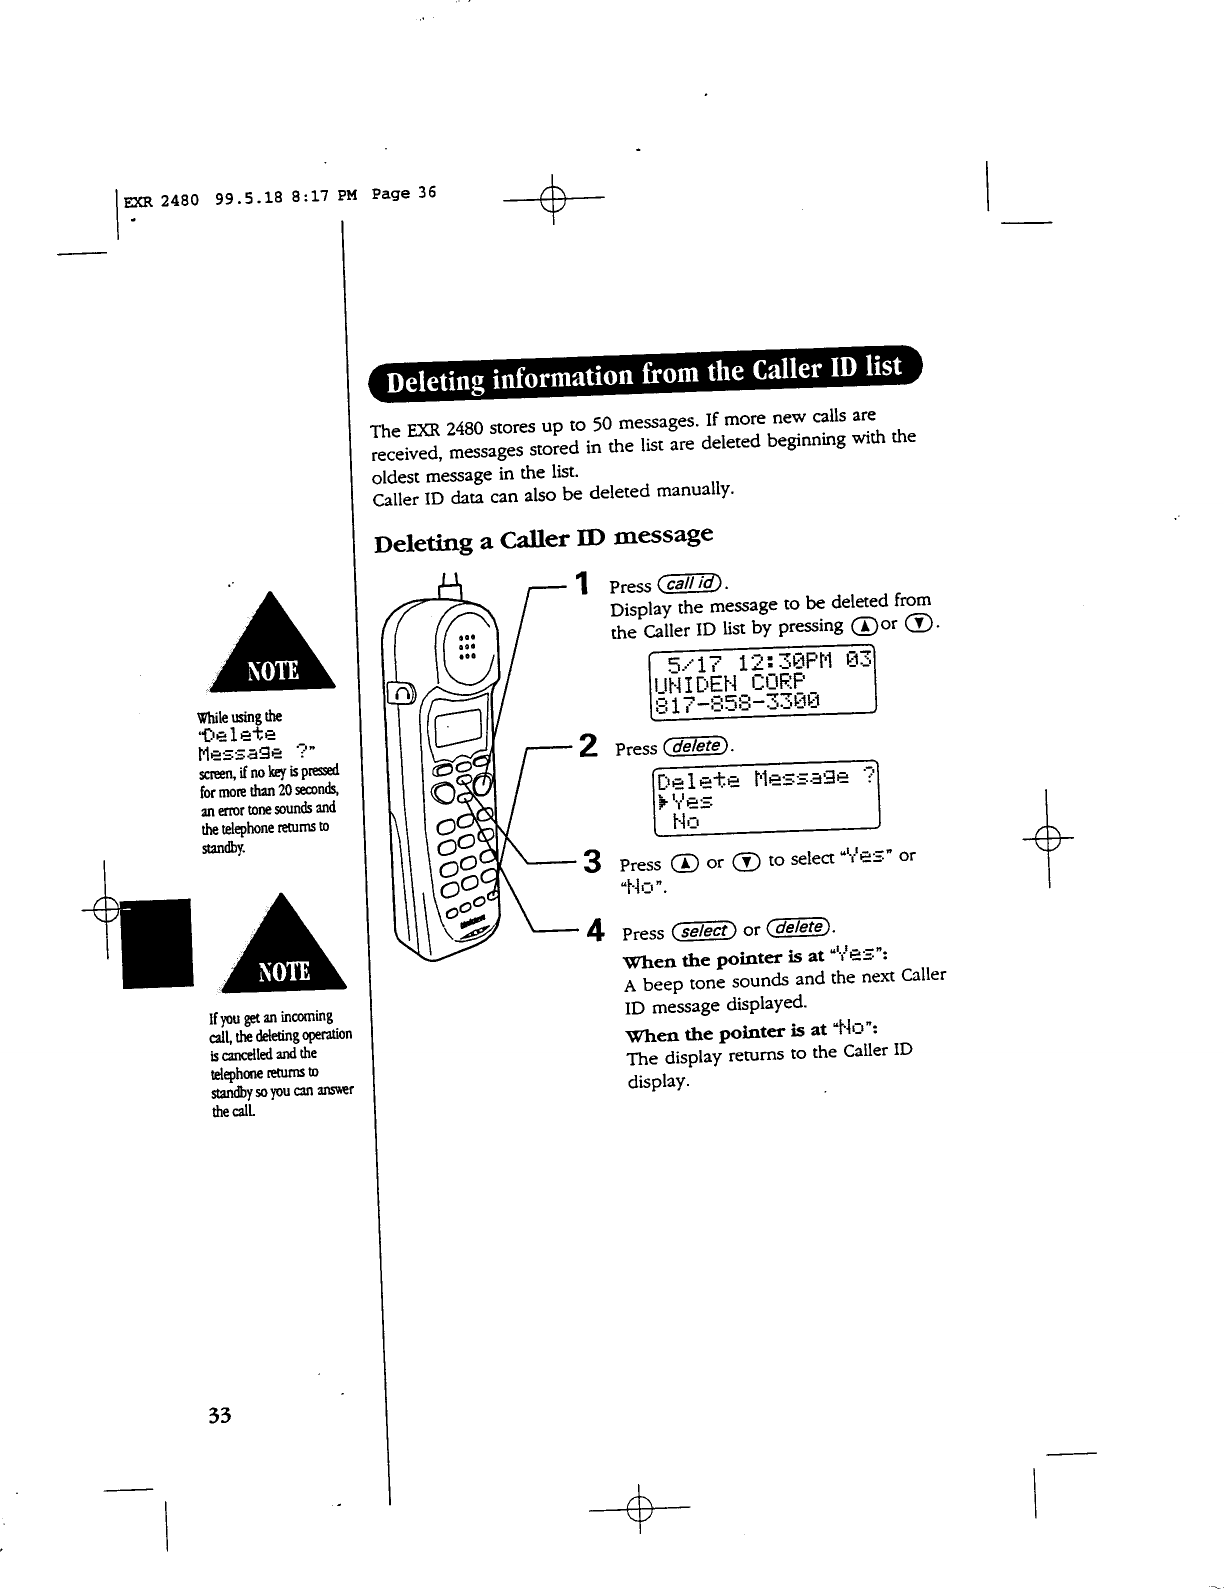 User Manual For Toshiba Ty-ckm 39 Cd Player